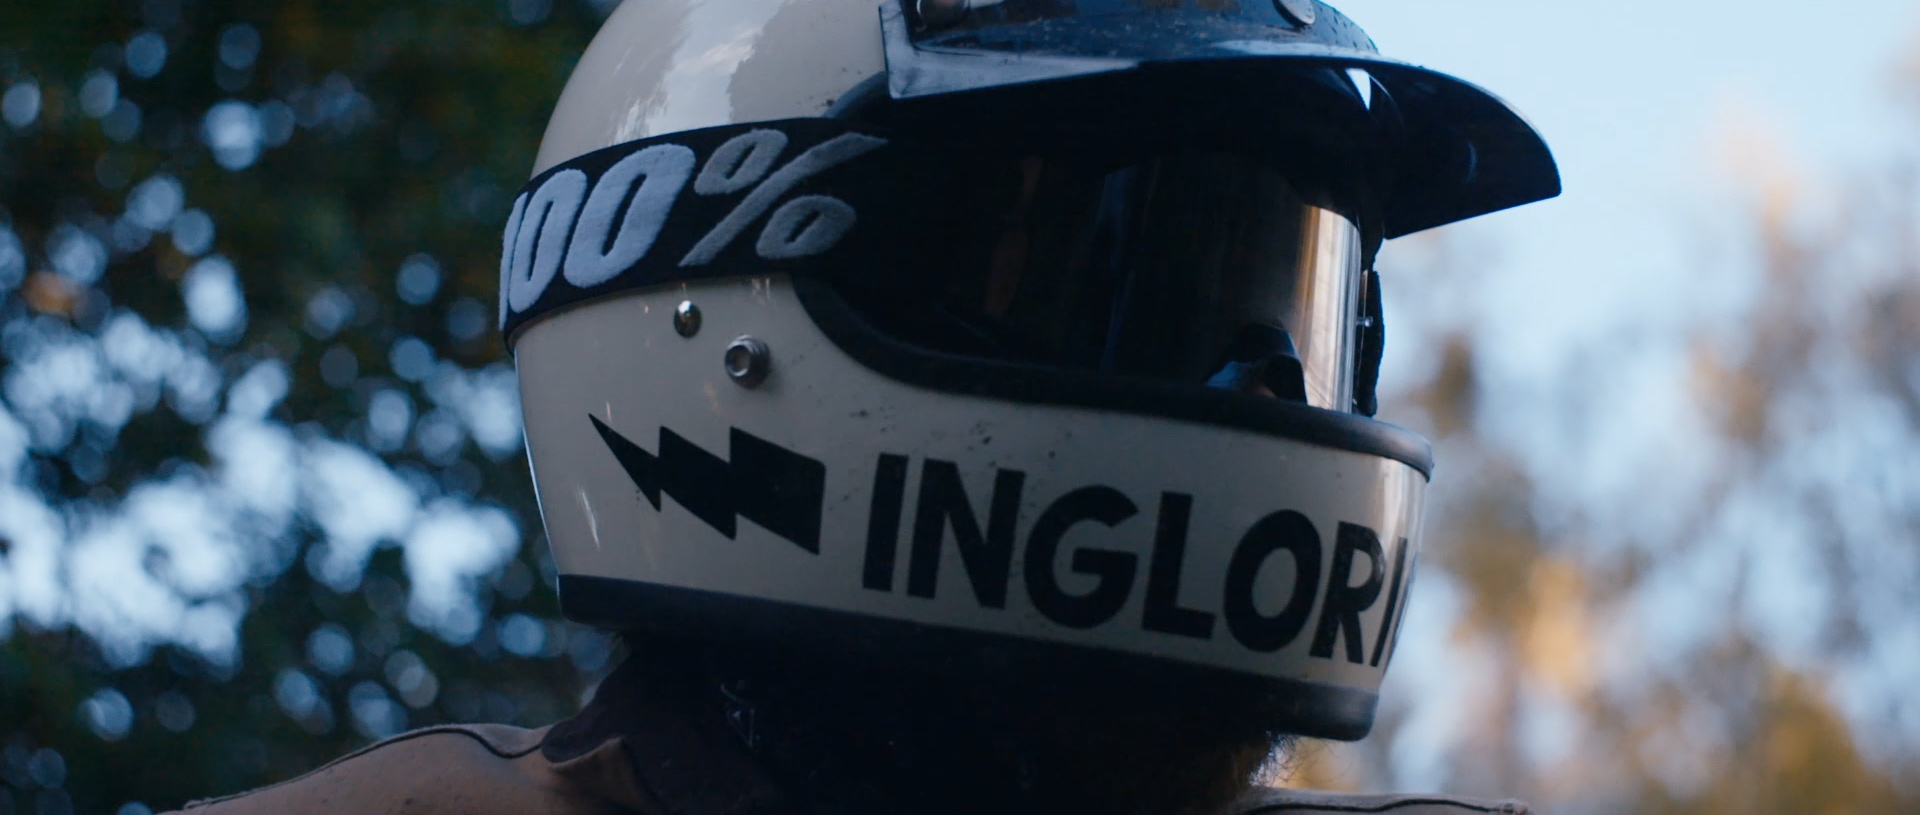 Inglorious_Motorcycles_FINAL_MIX_EXPORT_235CROP_V2.00_03_19_04.Still010.jpg